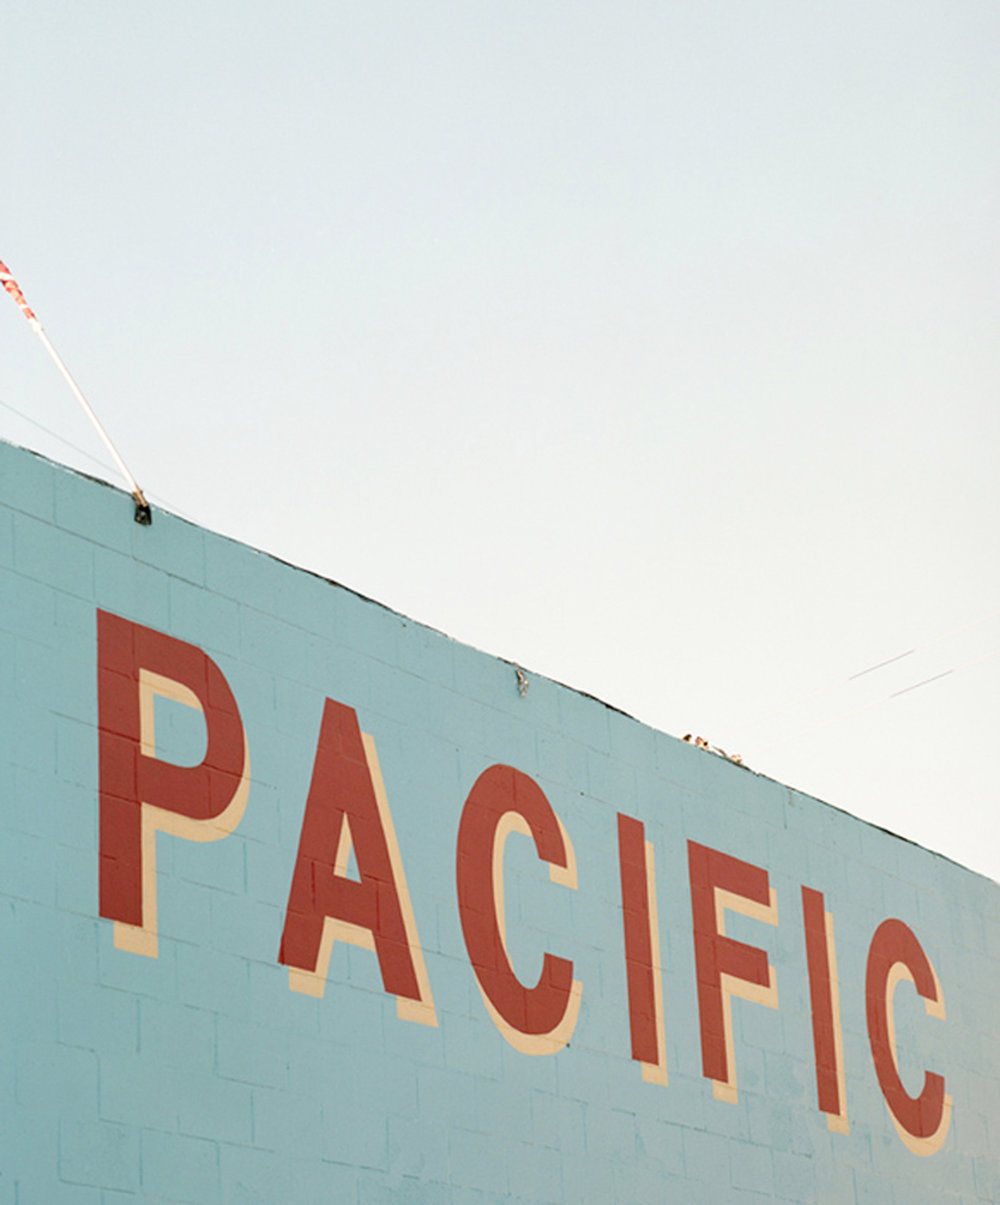 PACIFIC© Will Adler.jpg